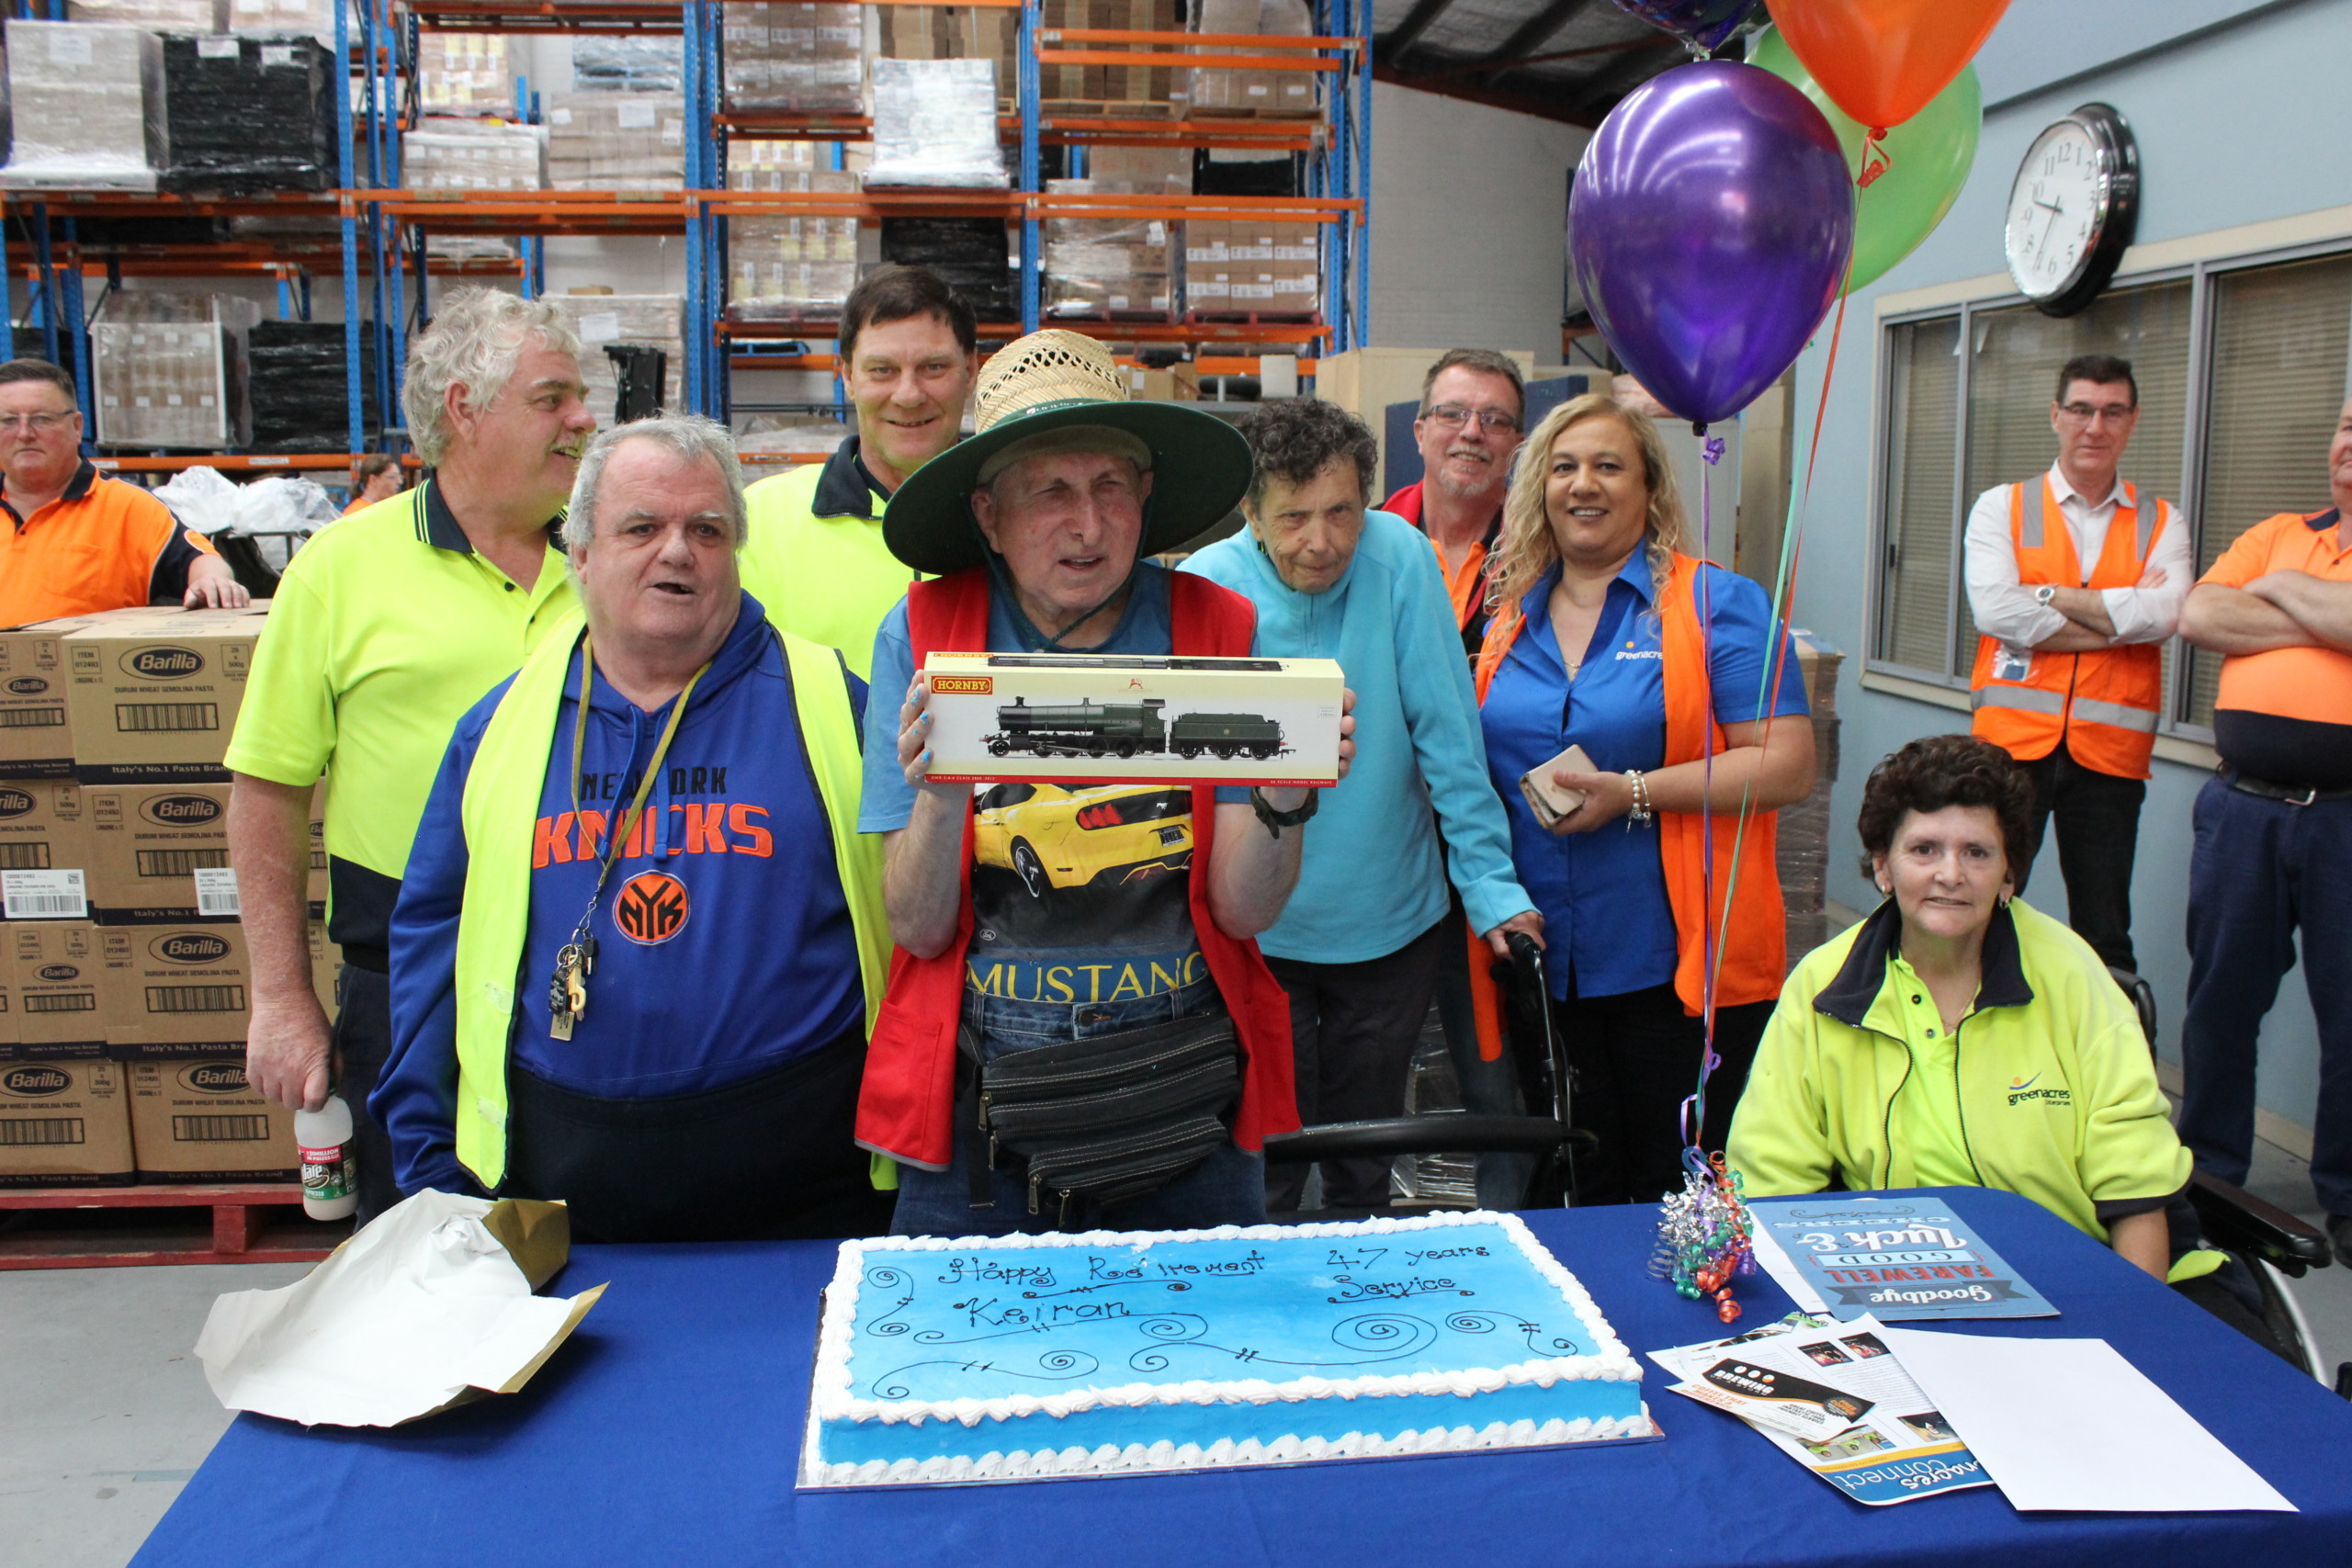 Incredible 47 Years for Keiran